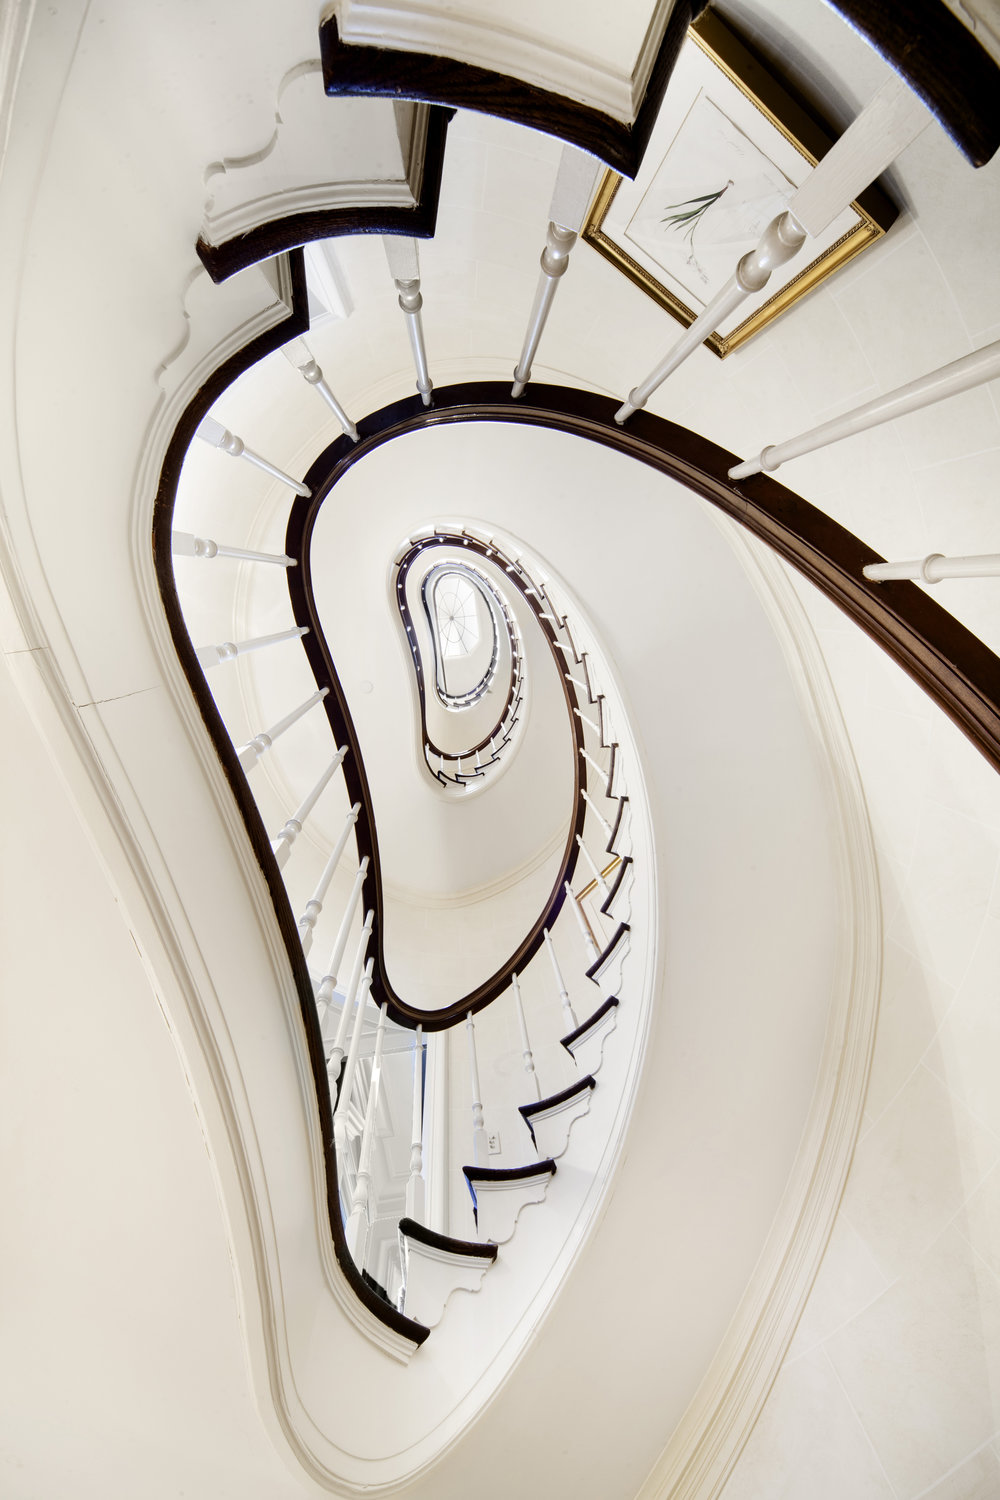 14SuttonSquare_stairway1A.jpg